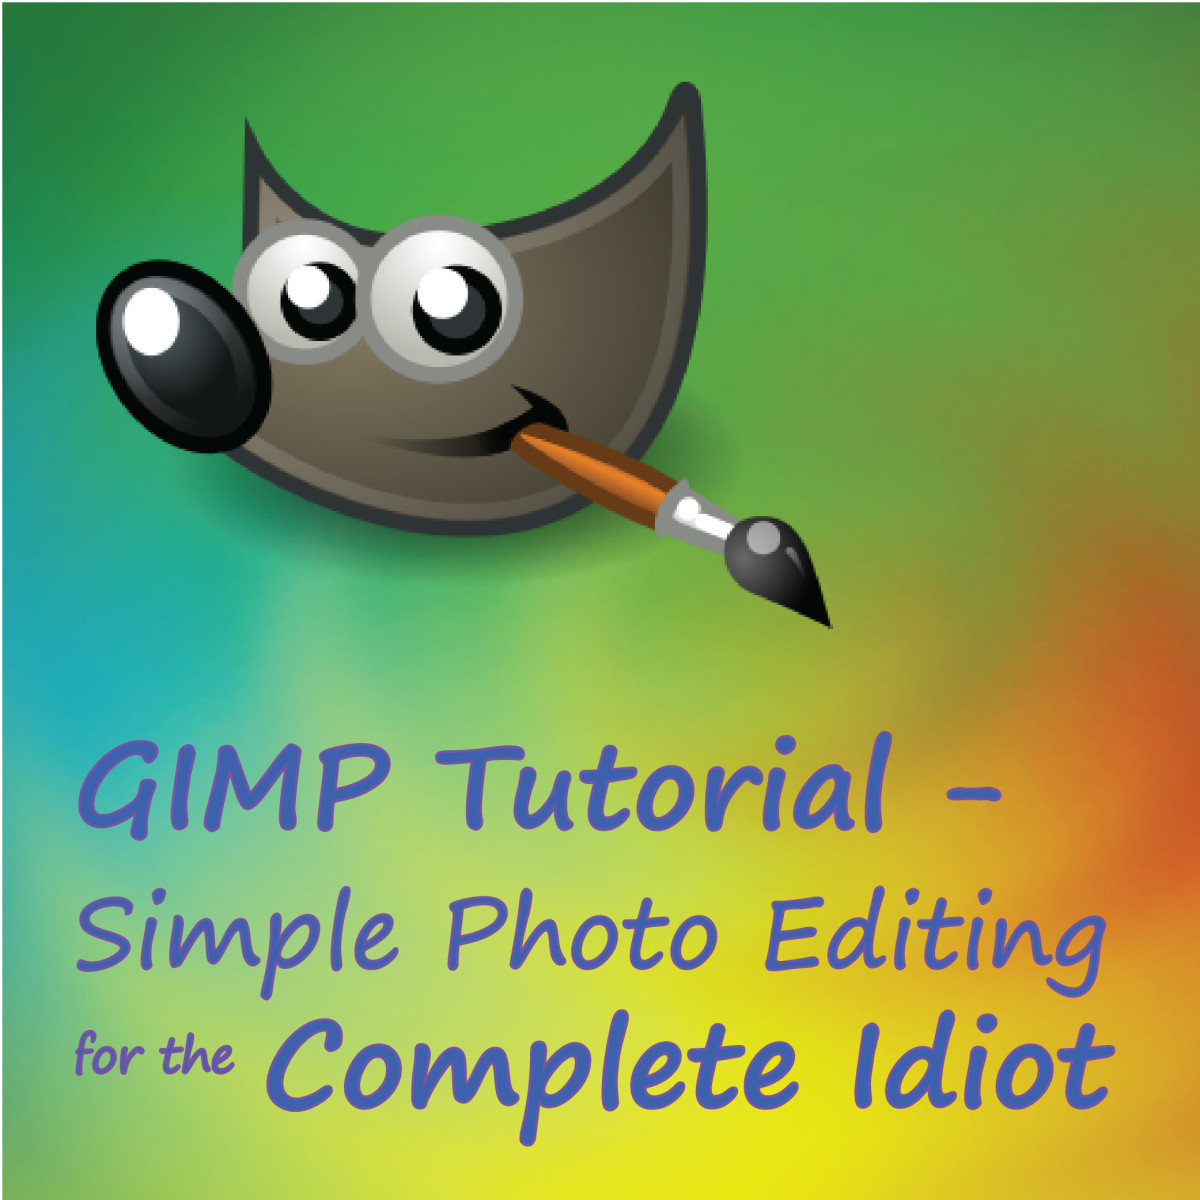 Gimp 2.6 Tutorials Gimp Tutorial Simple Photo Editing For The Complete